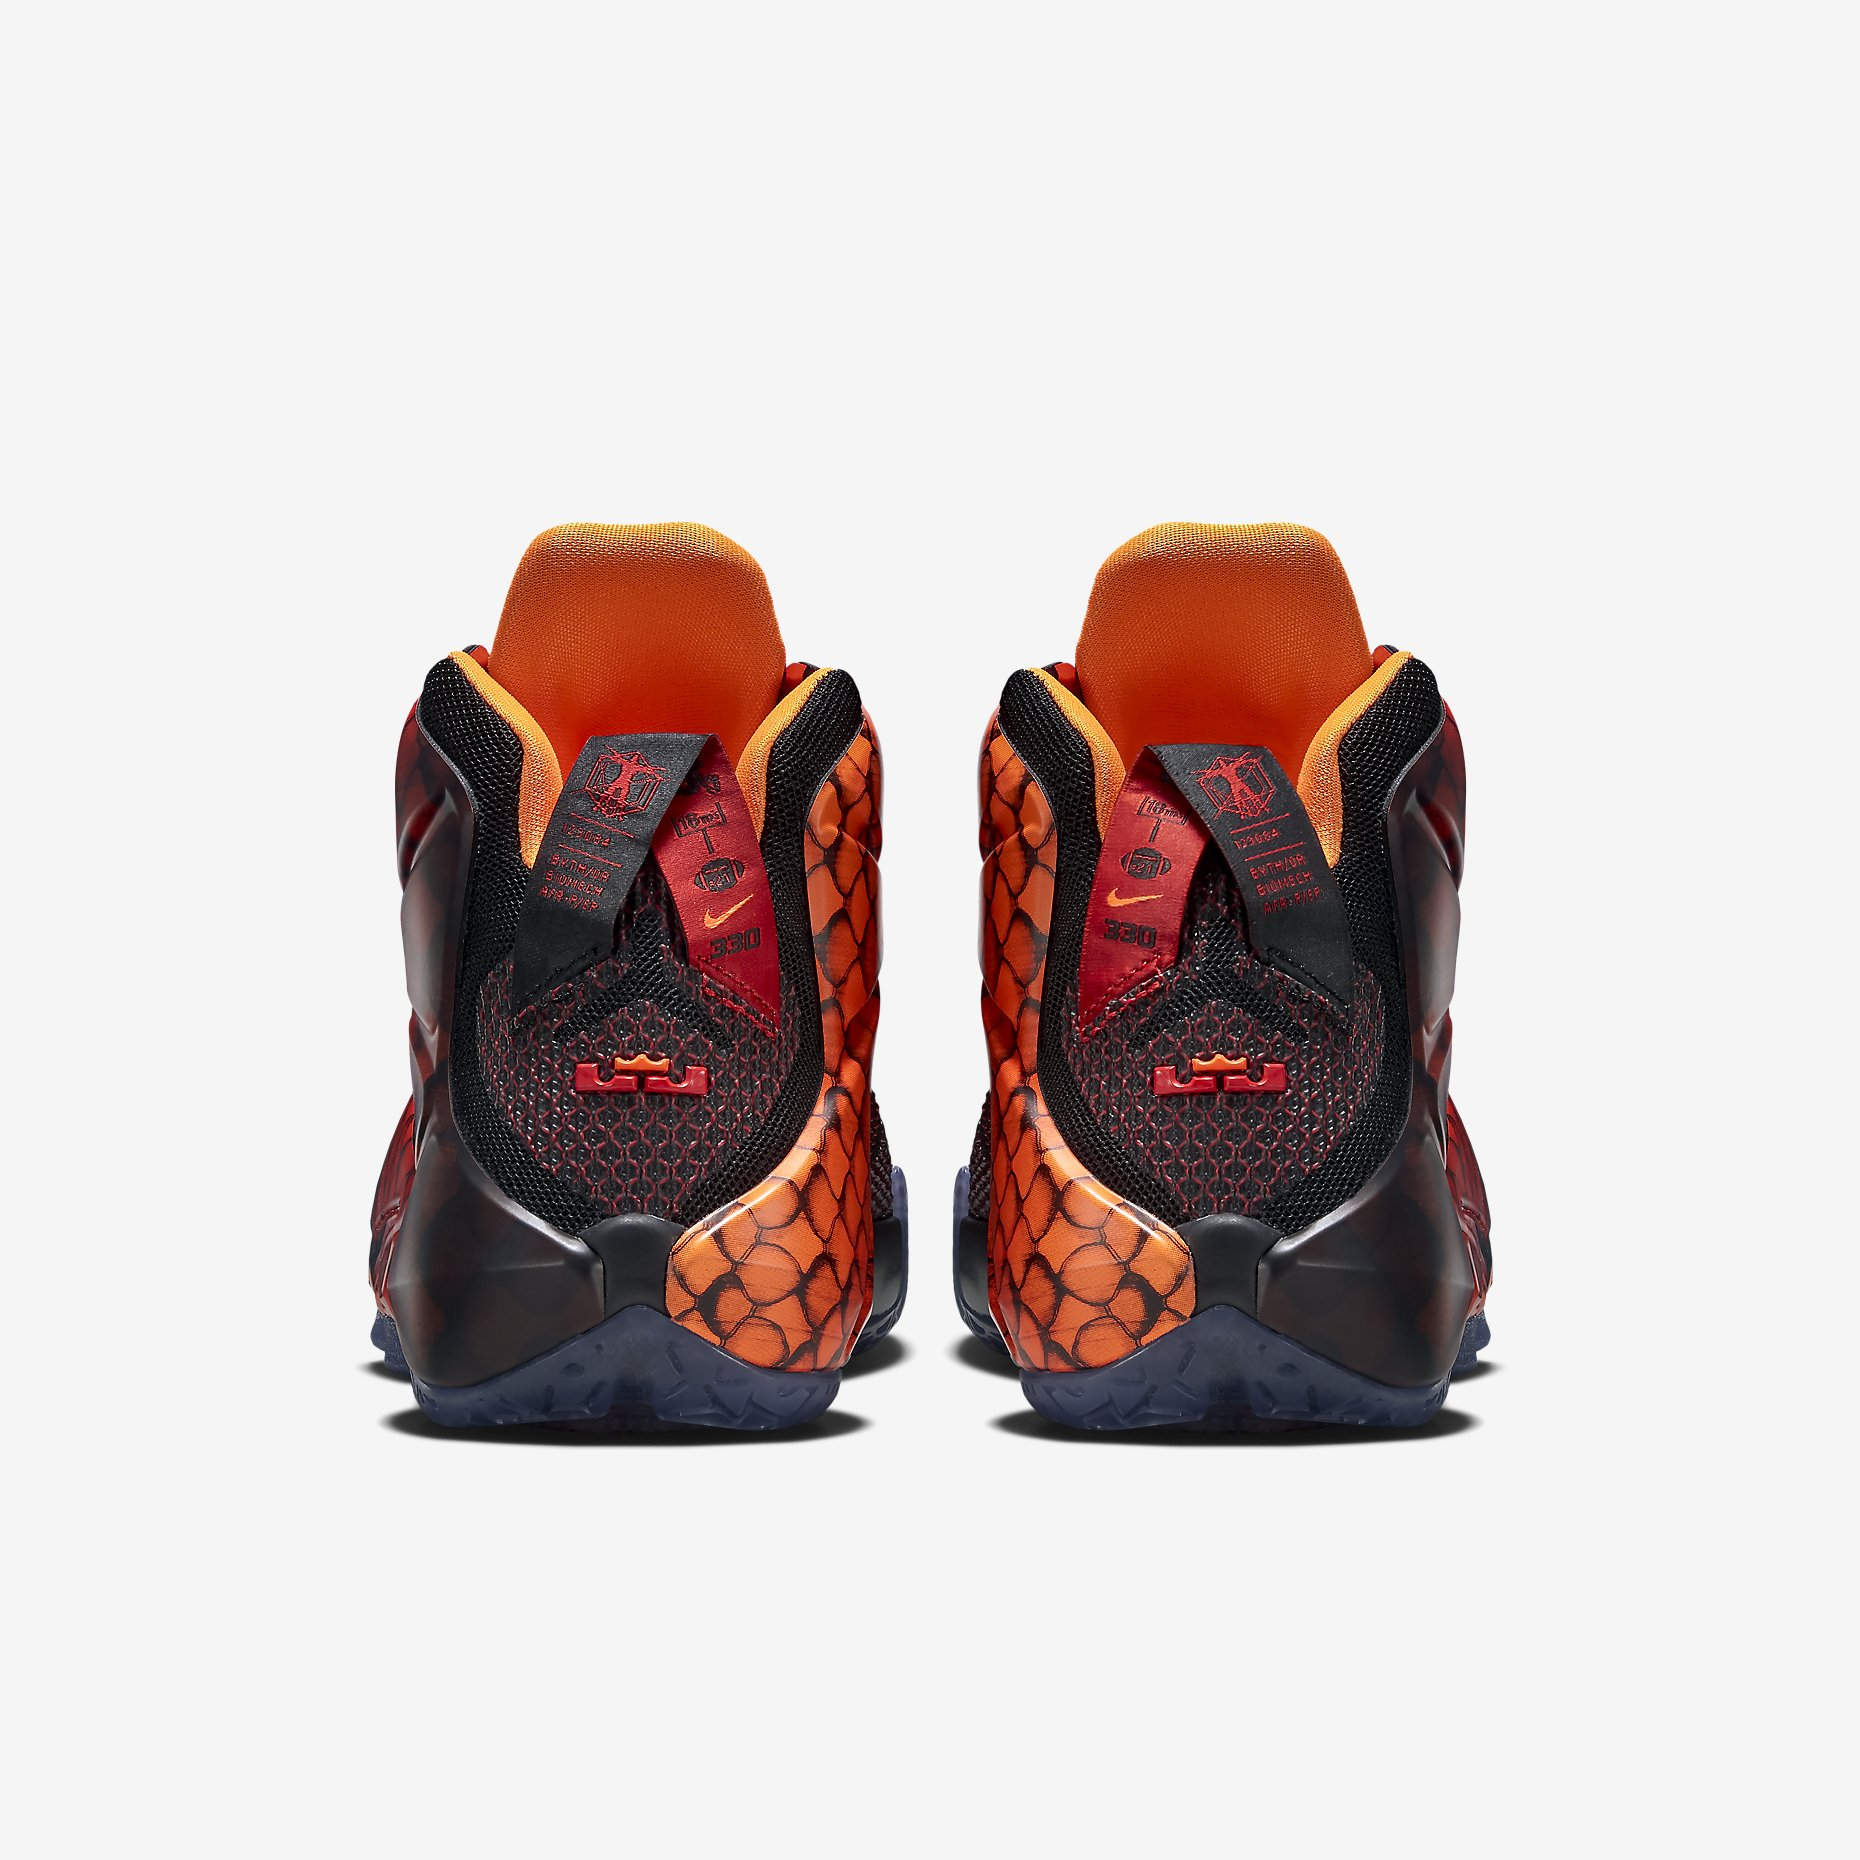 Nike lebron 12 xii young dragons black orange red 685181 010 7y youth